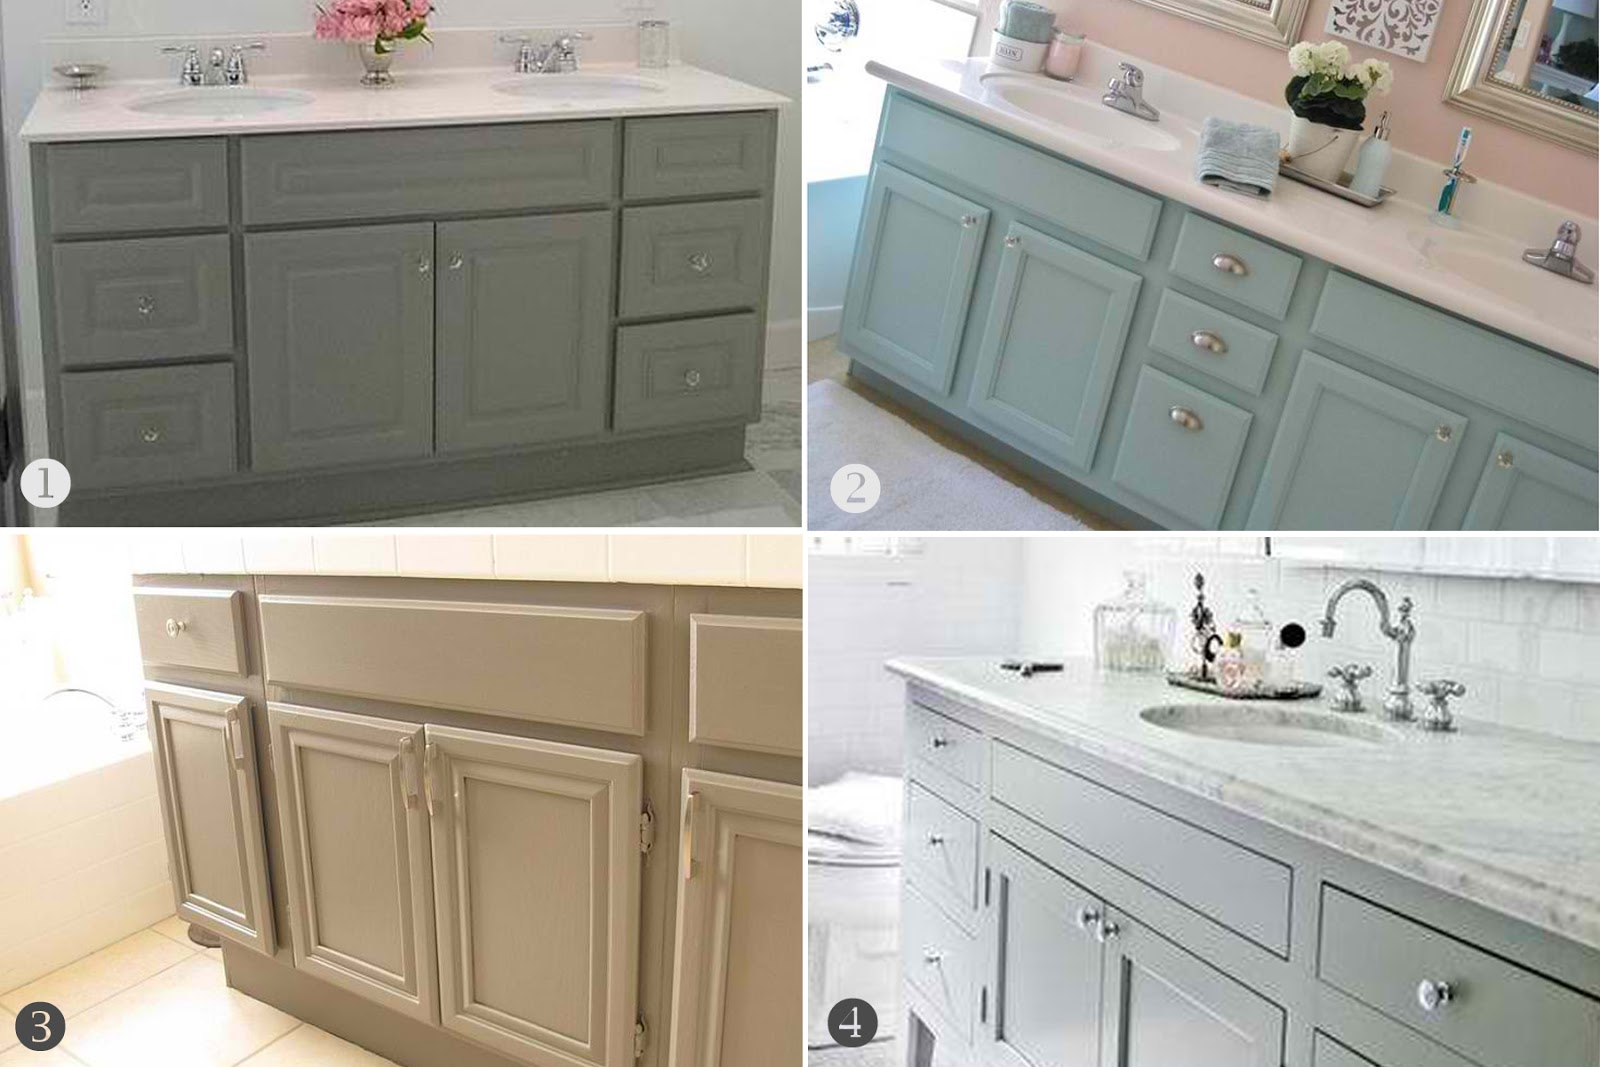 Inspired honey bee home bathroom cabinets upgrade for Bathroom cabinet ideas photos